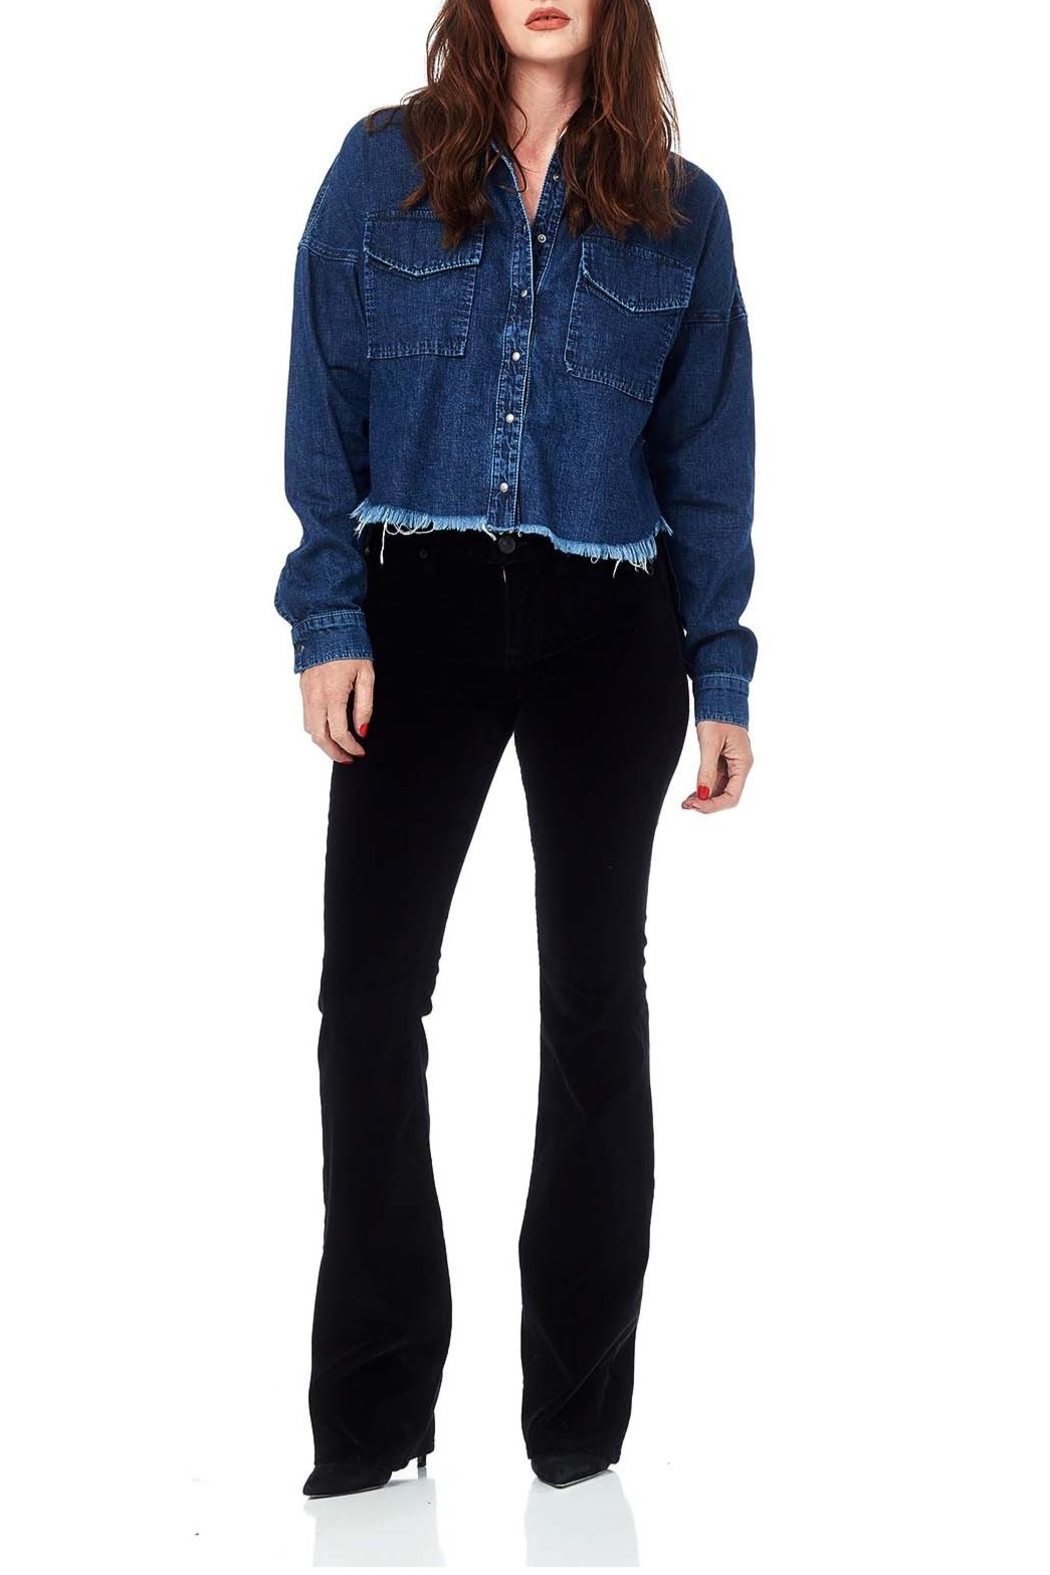 Hudson Jeans Black Velvet Midrise-Bootcut - Front Cropped Image